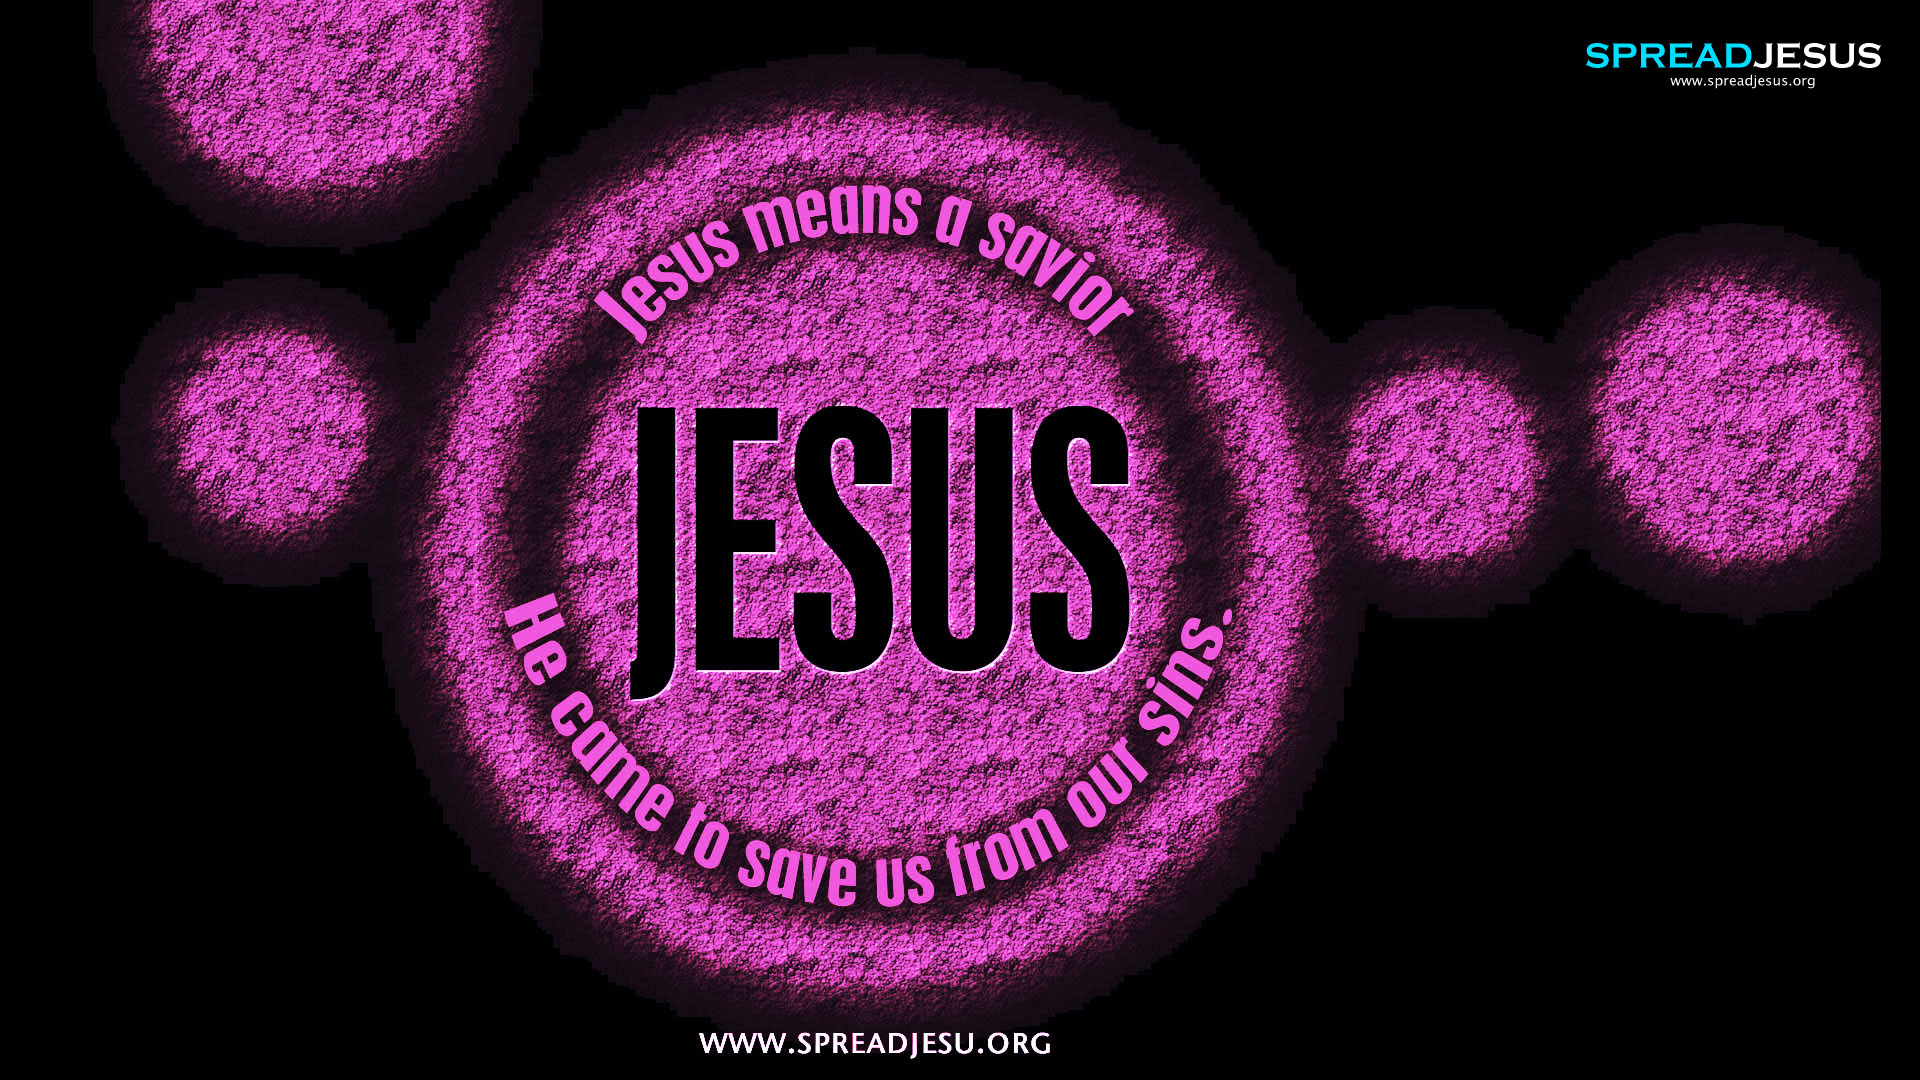 Jesus Means A Savior HD wallpapers free downloading Jesus Means A Savior He came to Save us from our Sins HD wallpaper 5 VIEW AND DOWNLOAD